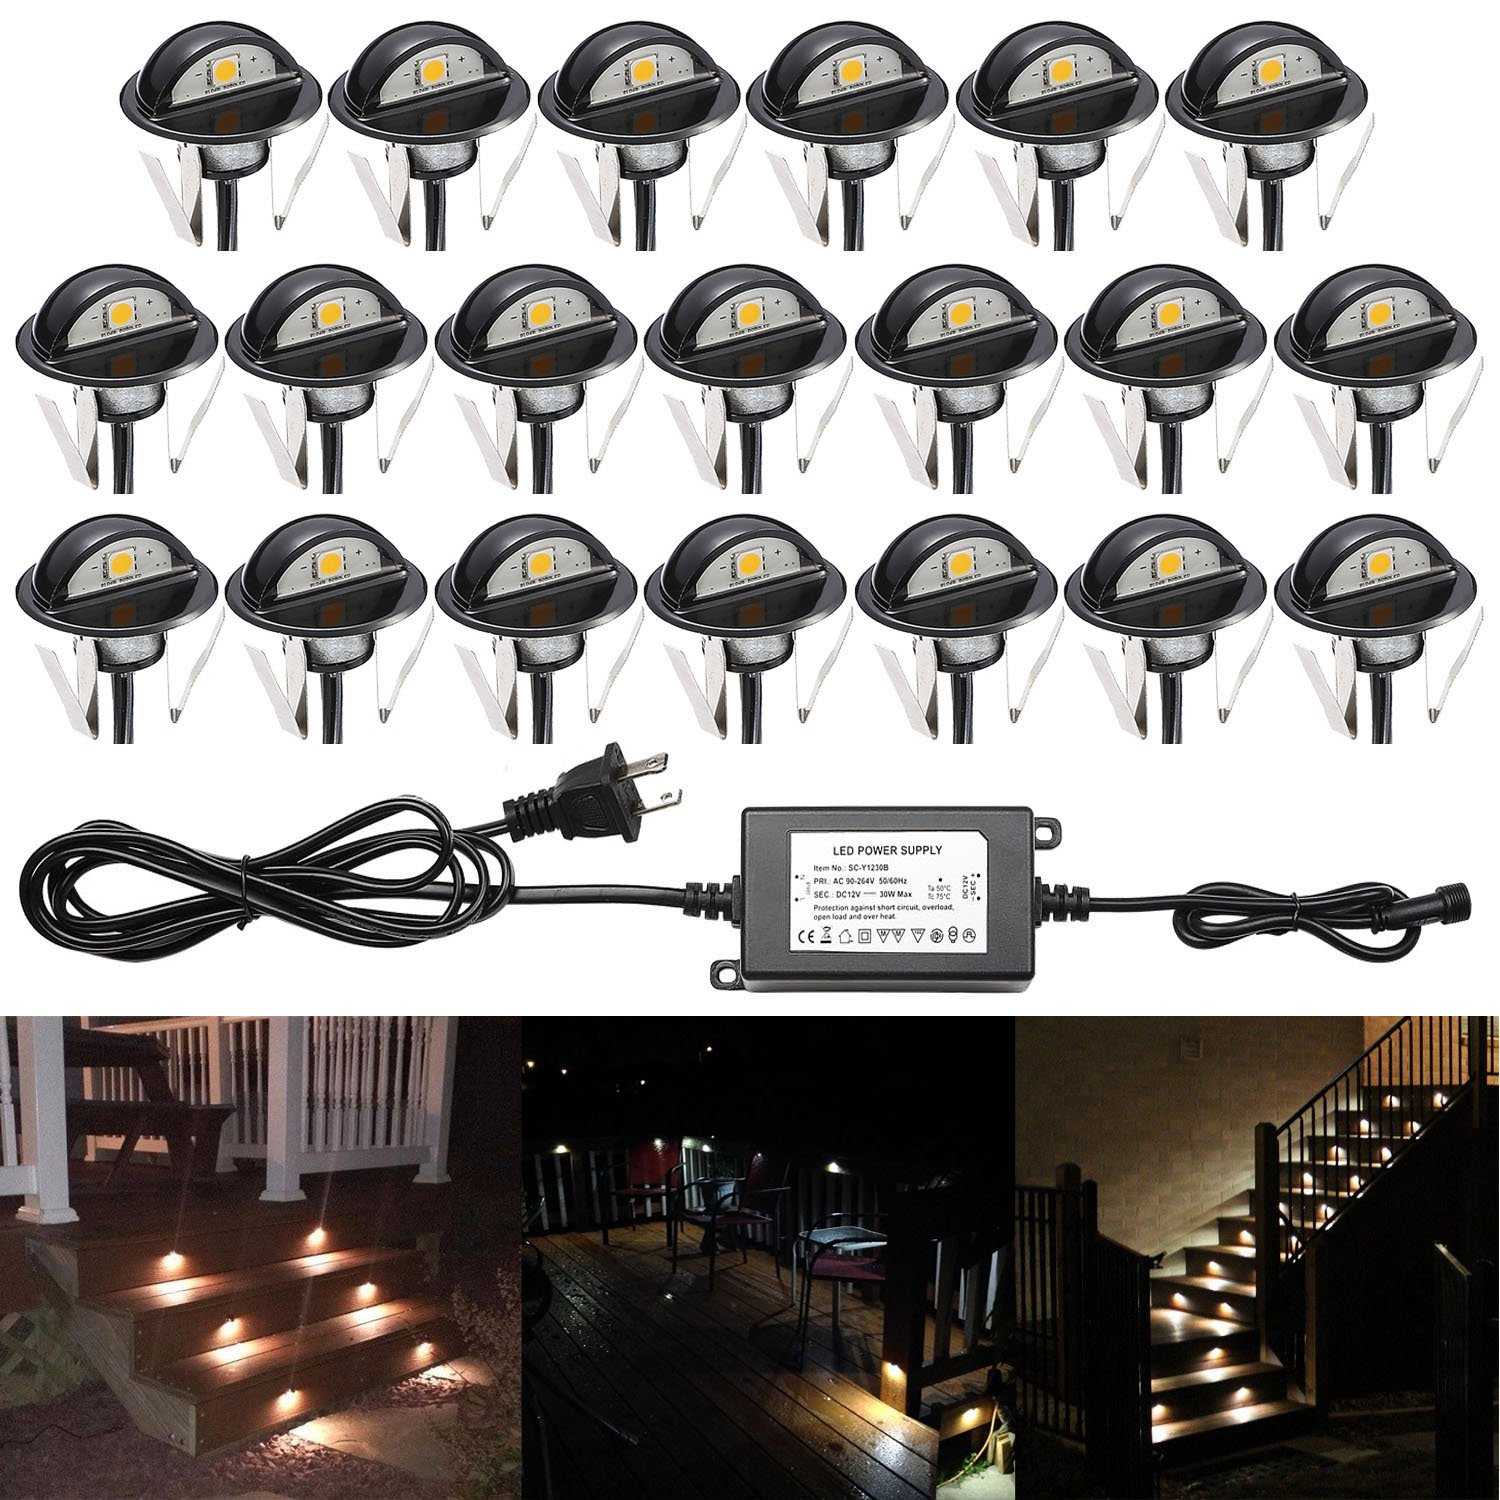 QACA 20pcs Recessed LED Deck Lighting Kits DC12V Low Voltage F1.38'' Waterproof IP 67,In Ground Lights for Steps,Stair,Patio,Floor,Pool Deck ,Kitchen,Outdoor Landscape Lighting Warm White